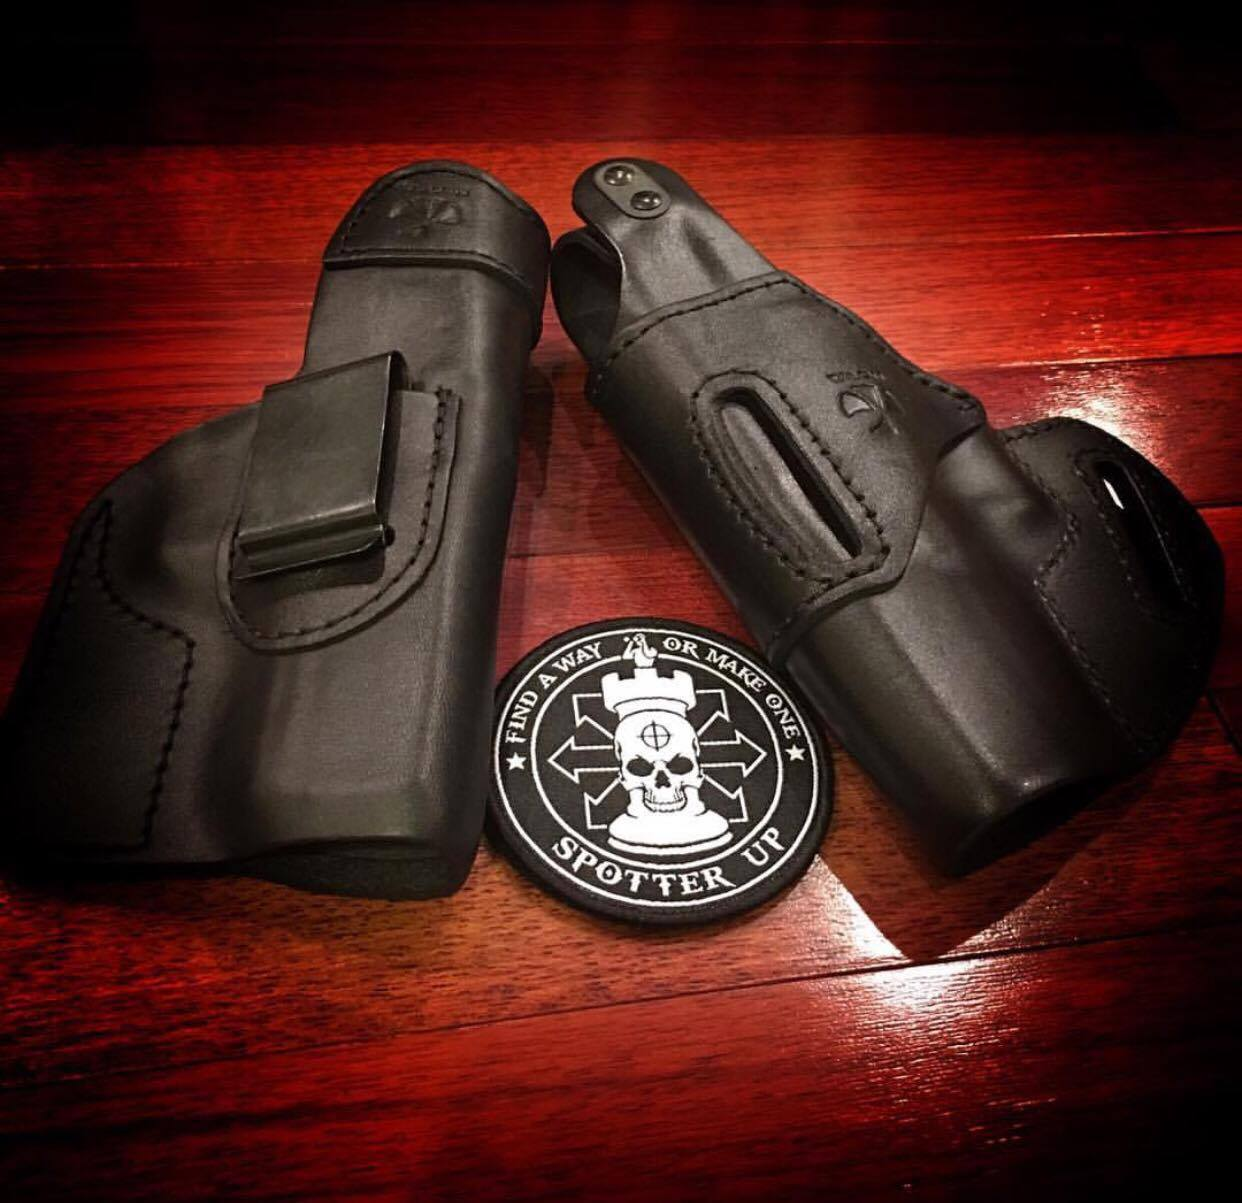 Talon Leather OWB Holster Review – Spotter Up